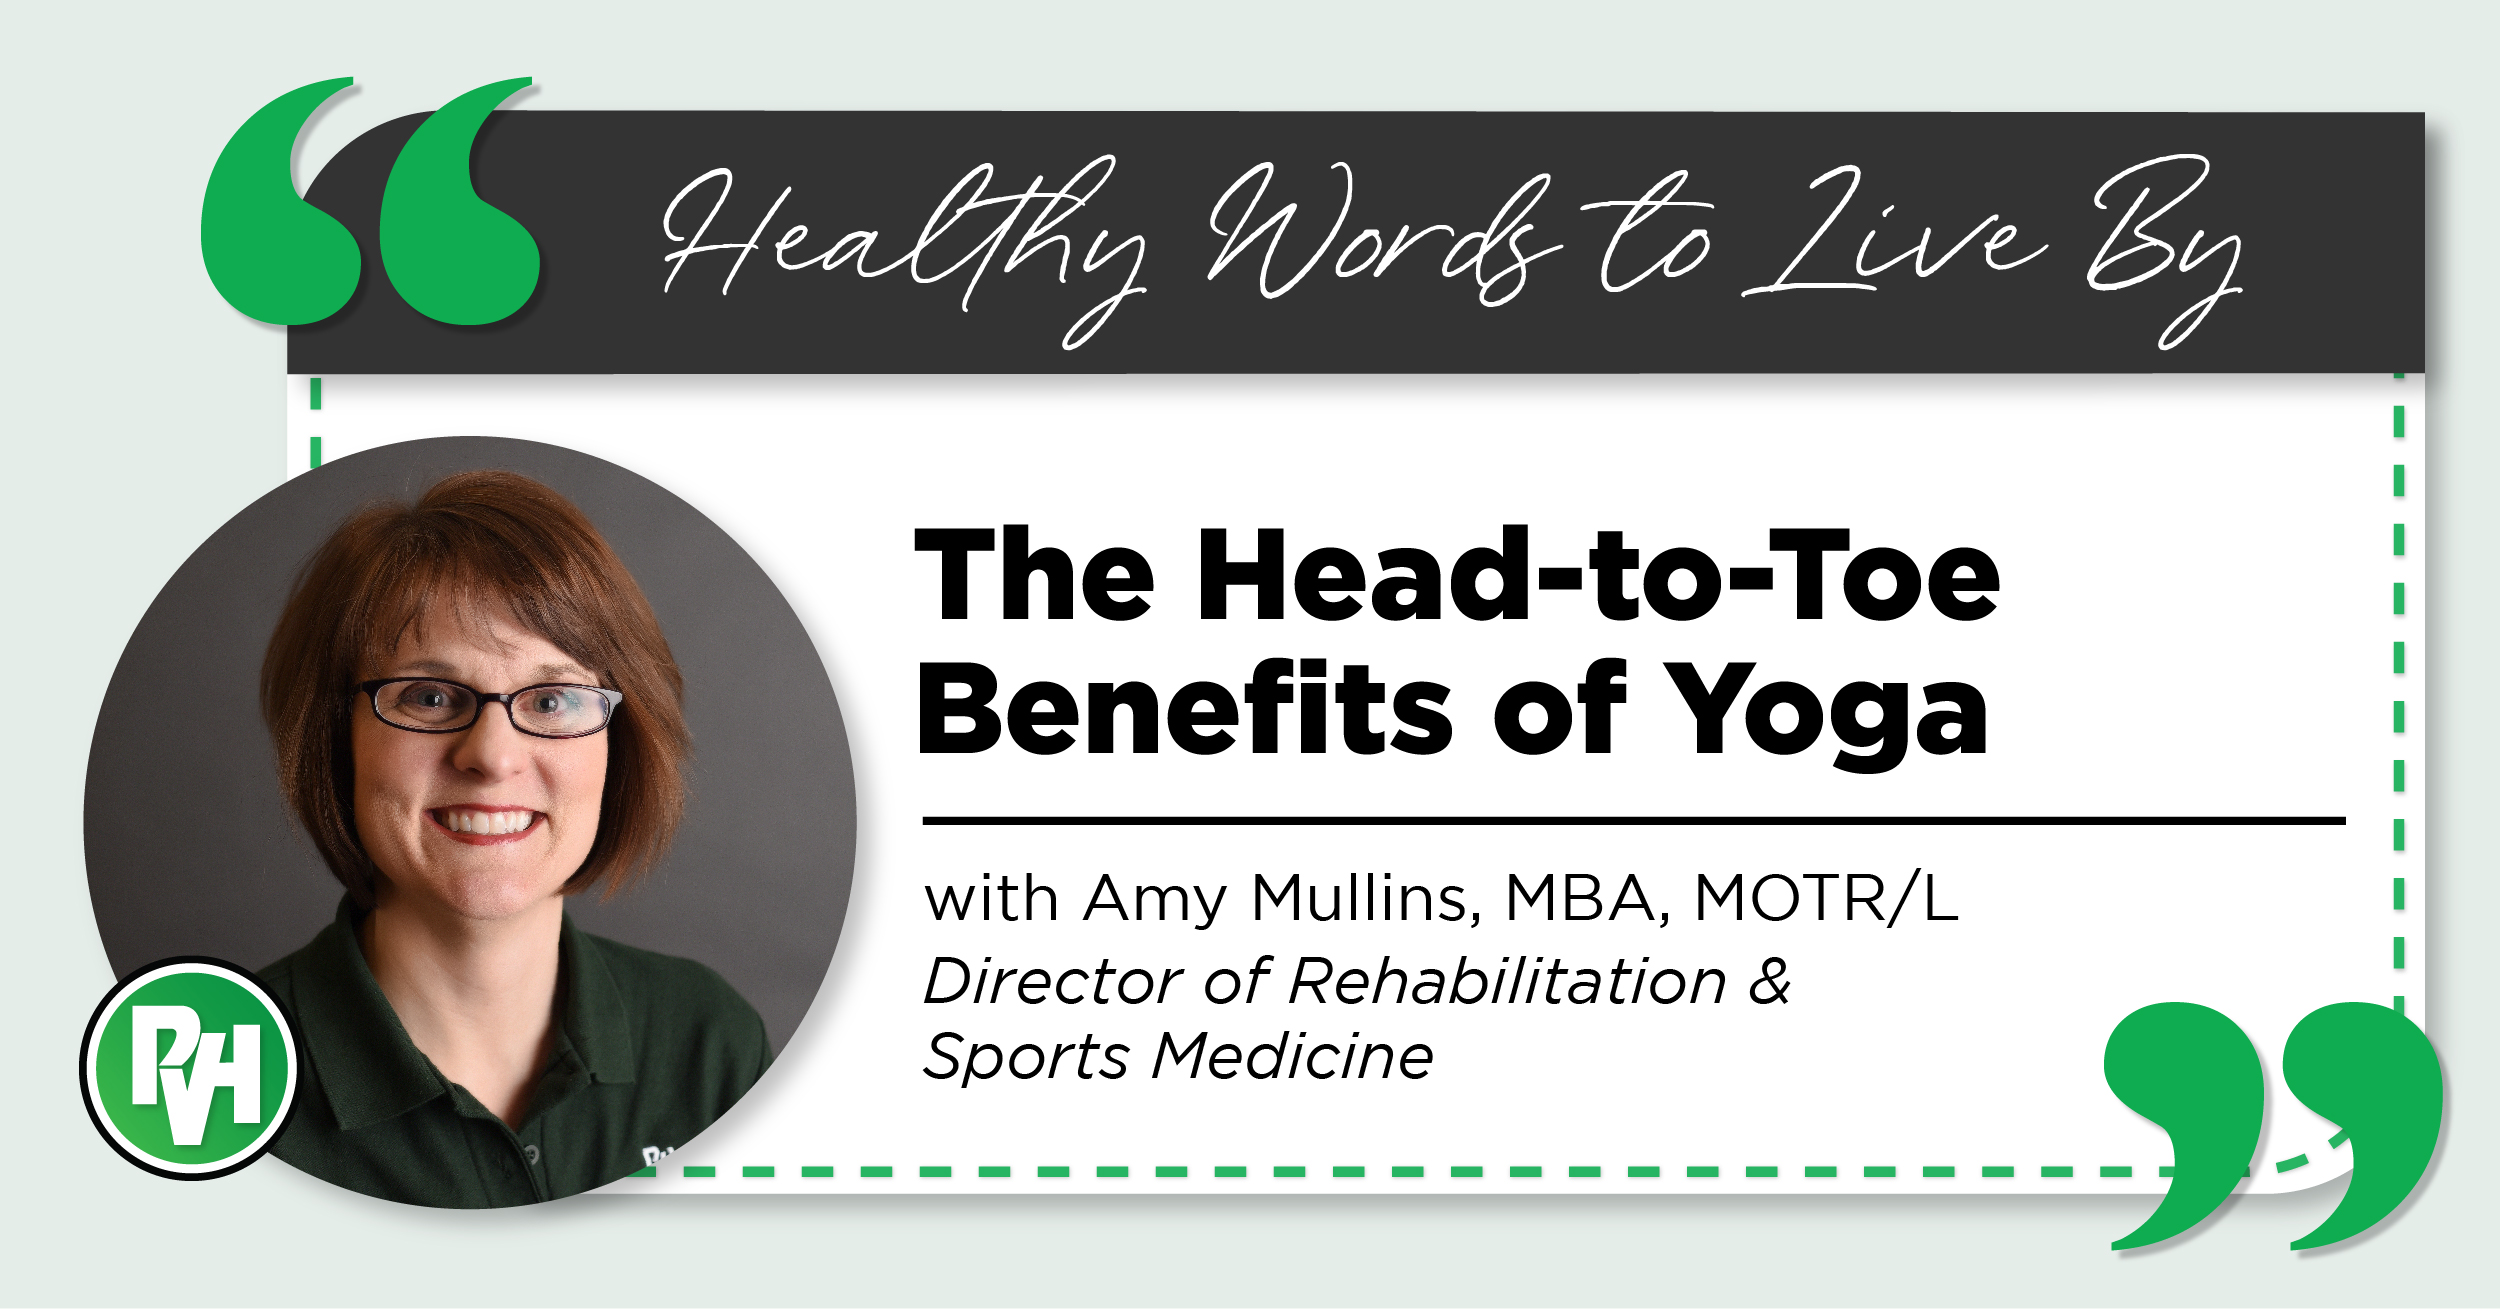 Healthy Words to Live By | The Head-to-Toe Benefits of Yoga with Amy Mullins, MBA, MOTR/L Director of Rehabilitation and Sports Medicine